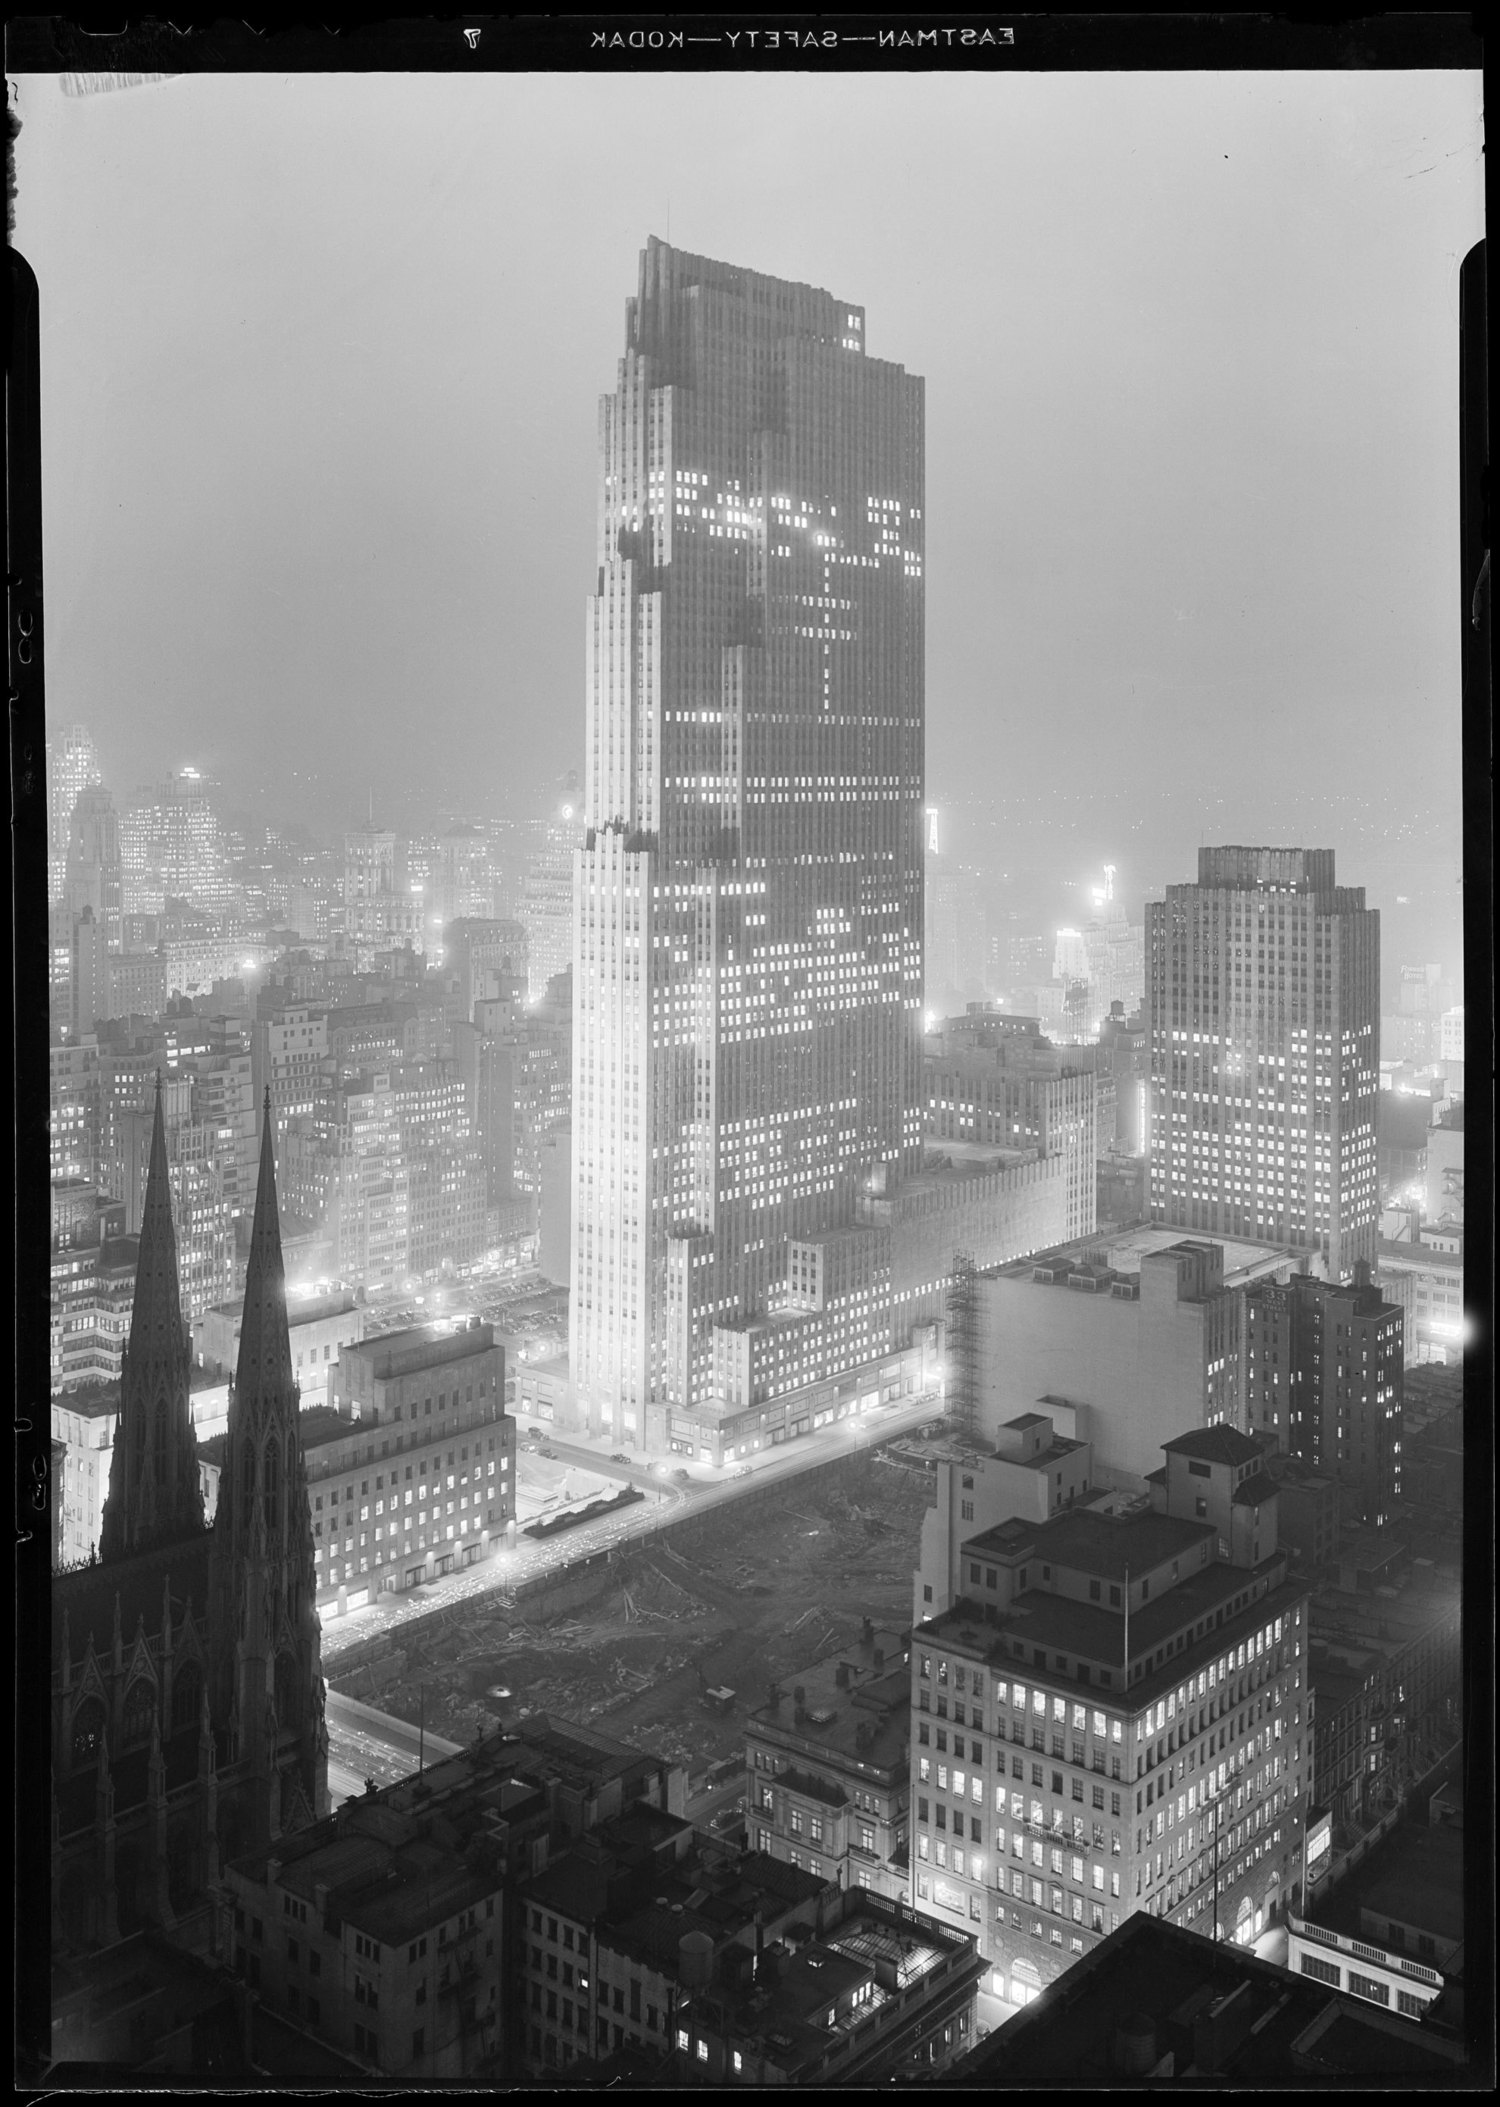 New York City views. Rockefeller Center and RCA Building from 515 Madison Ave.